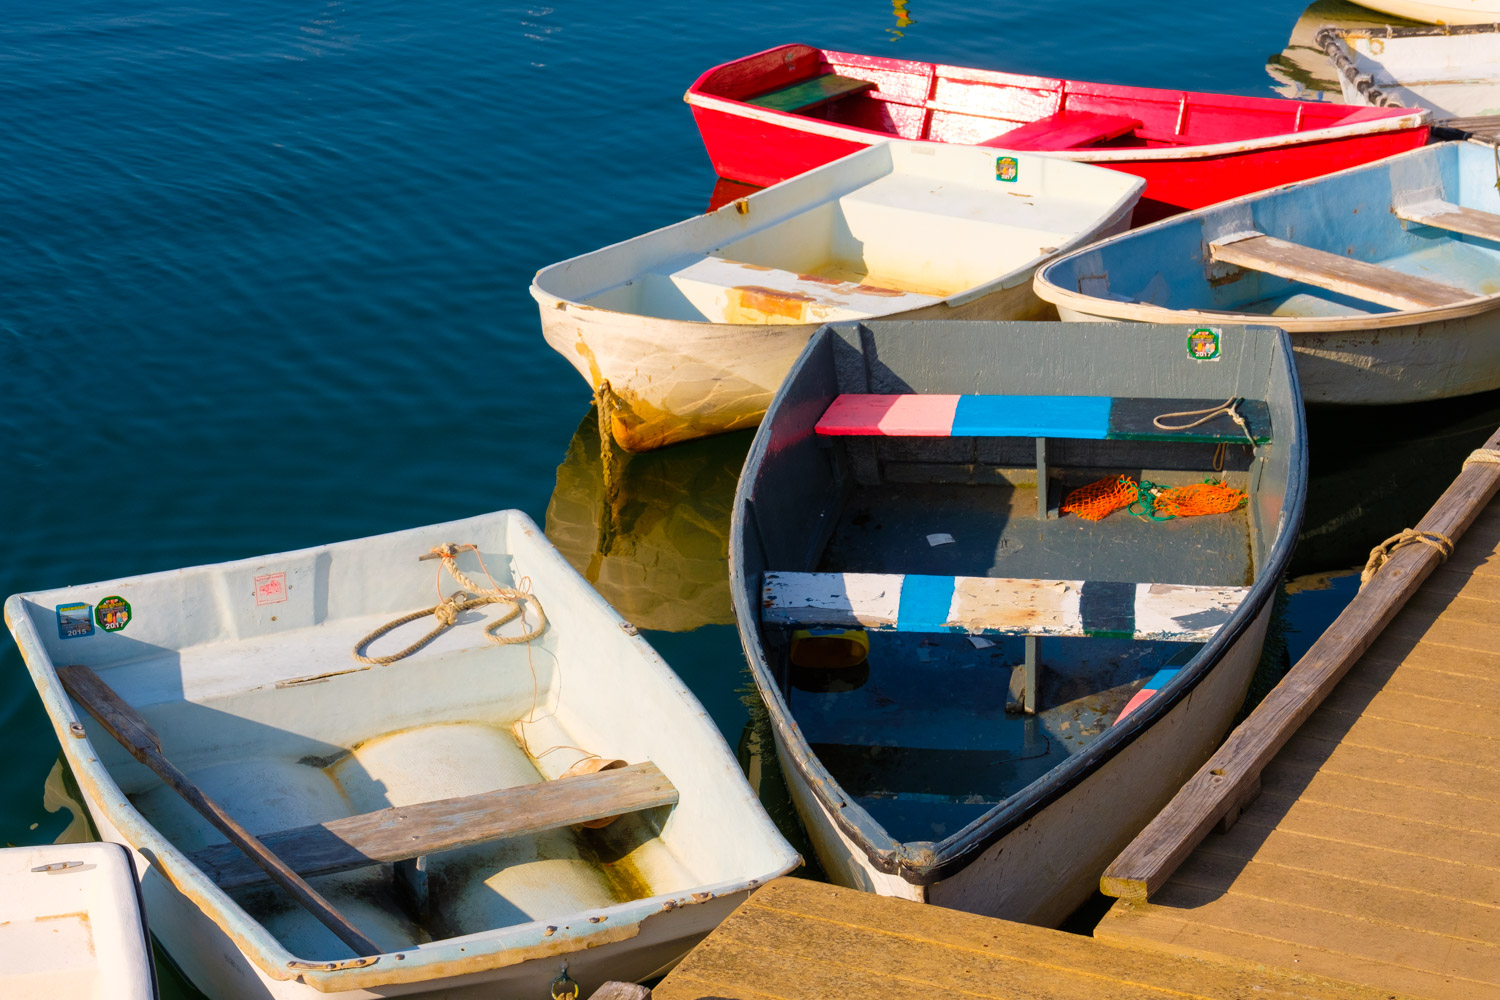 Fishermen's boats on Bradley Wharf in Rockport, Massachusetts.